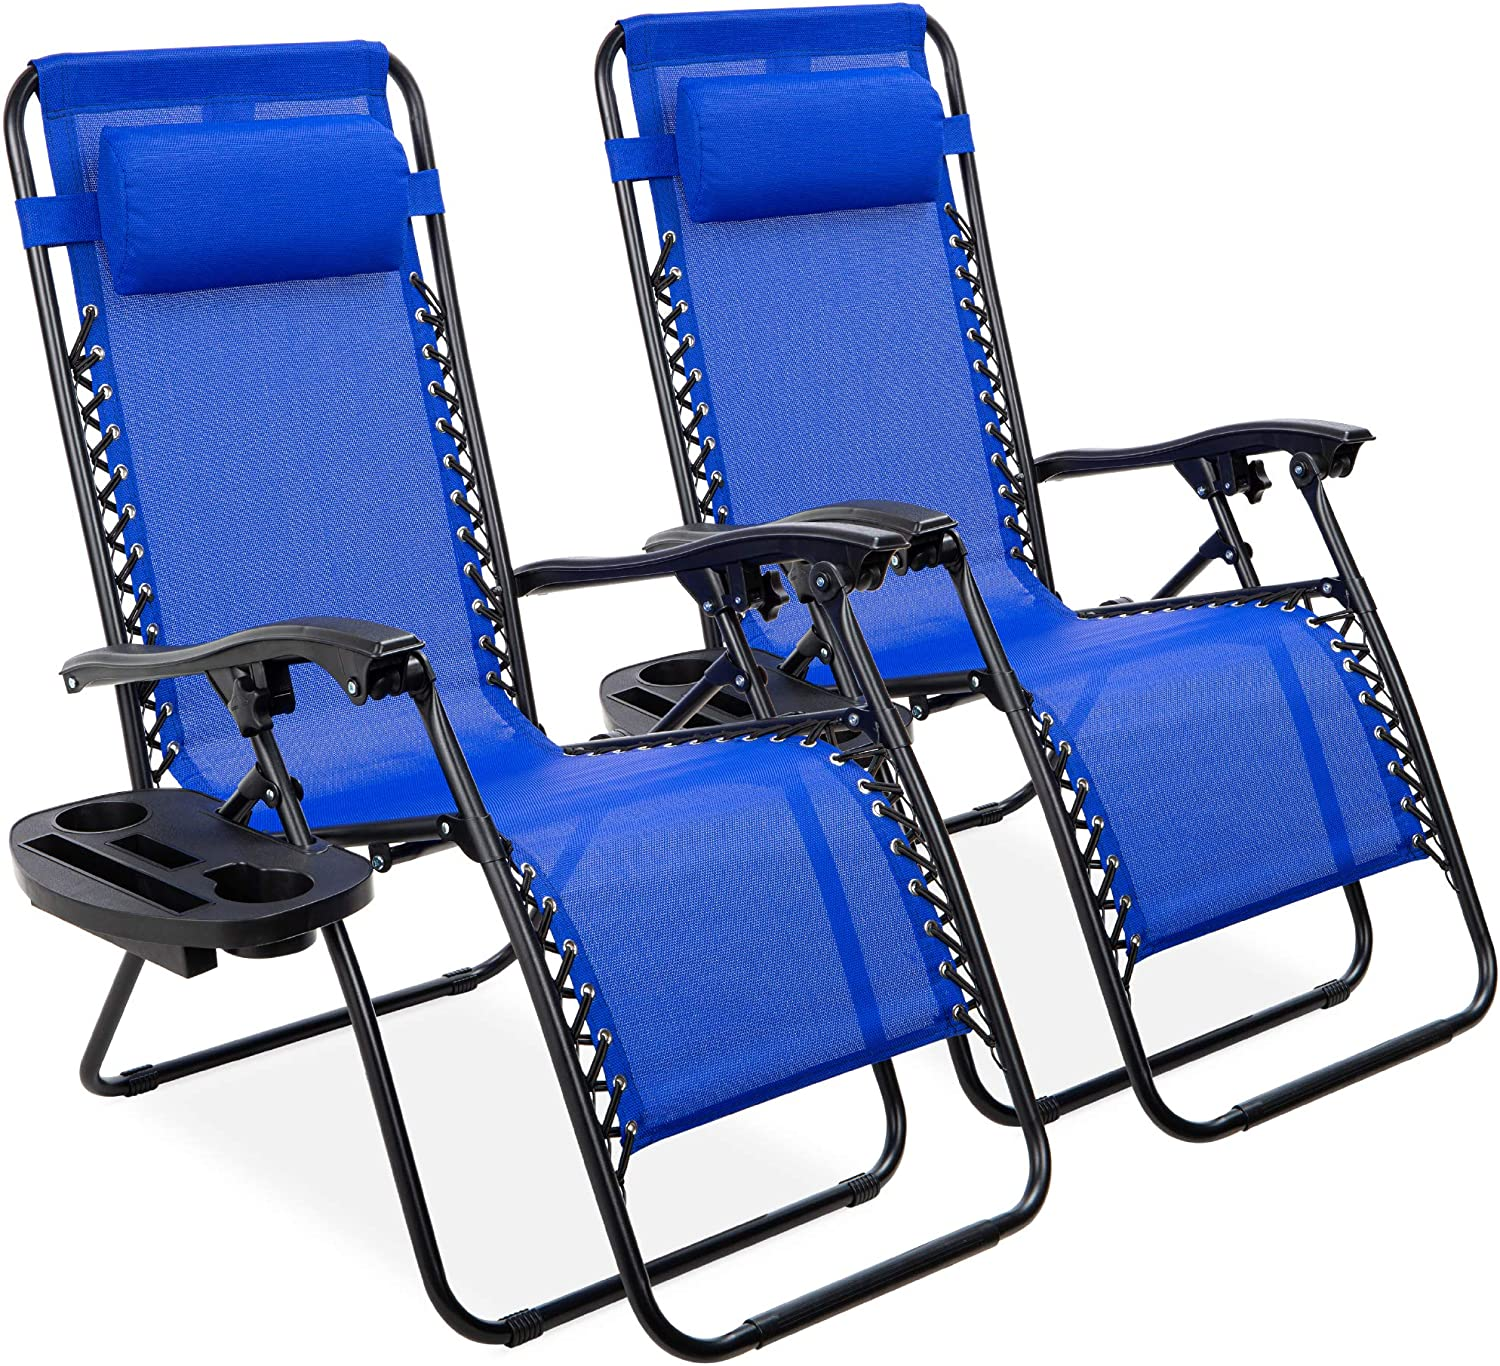 Best Choice Products Set of 2 Adjustable Steel Mesh Zero Gravity Lounge Chair Recliners w/Pillows and Cup Holder Trays, Cobalt Blue